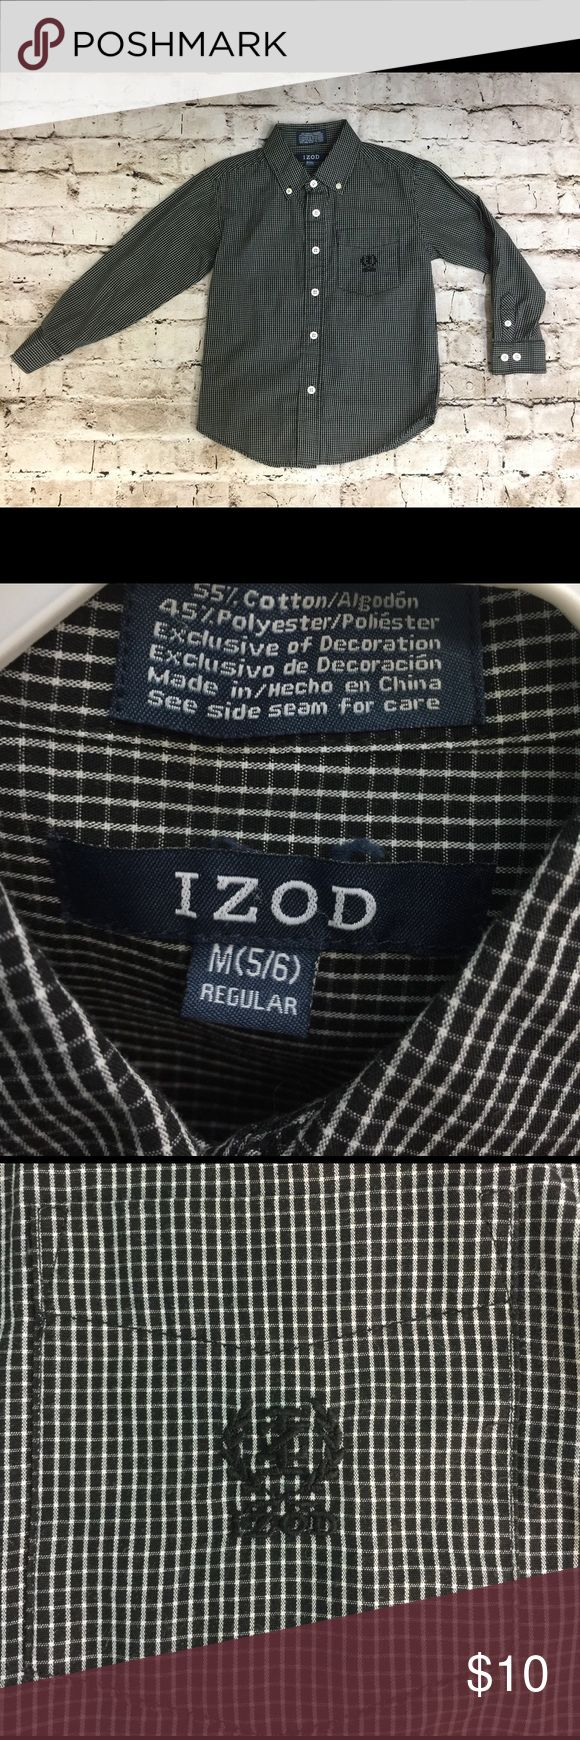 Izod Boys dress shirt This Izod button up shirt is in excellent condition. Would be perfect for church, dress up or just for looking handsome! Izod Shirts & Tops Button Down Shirts